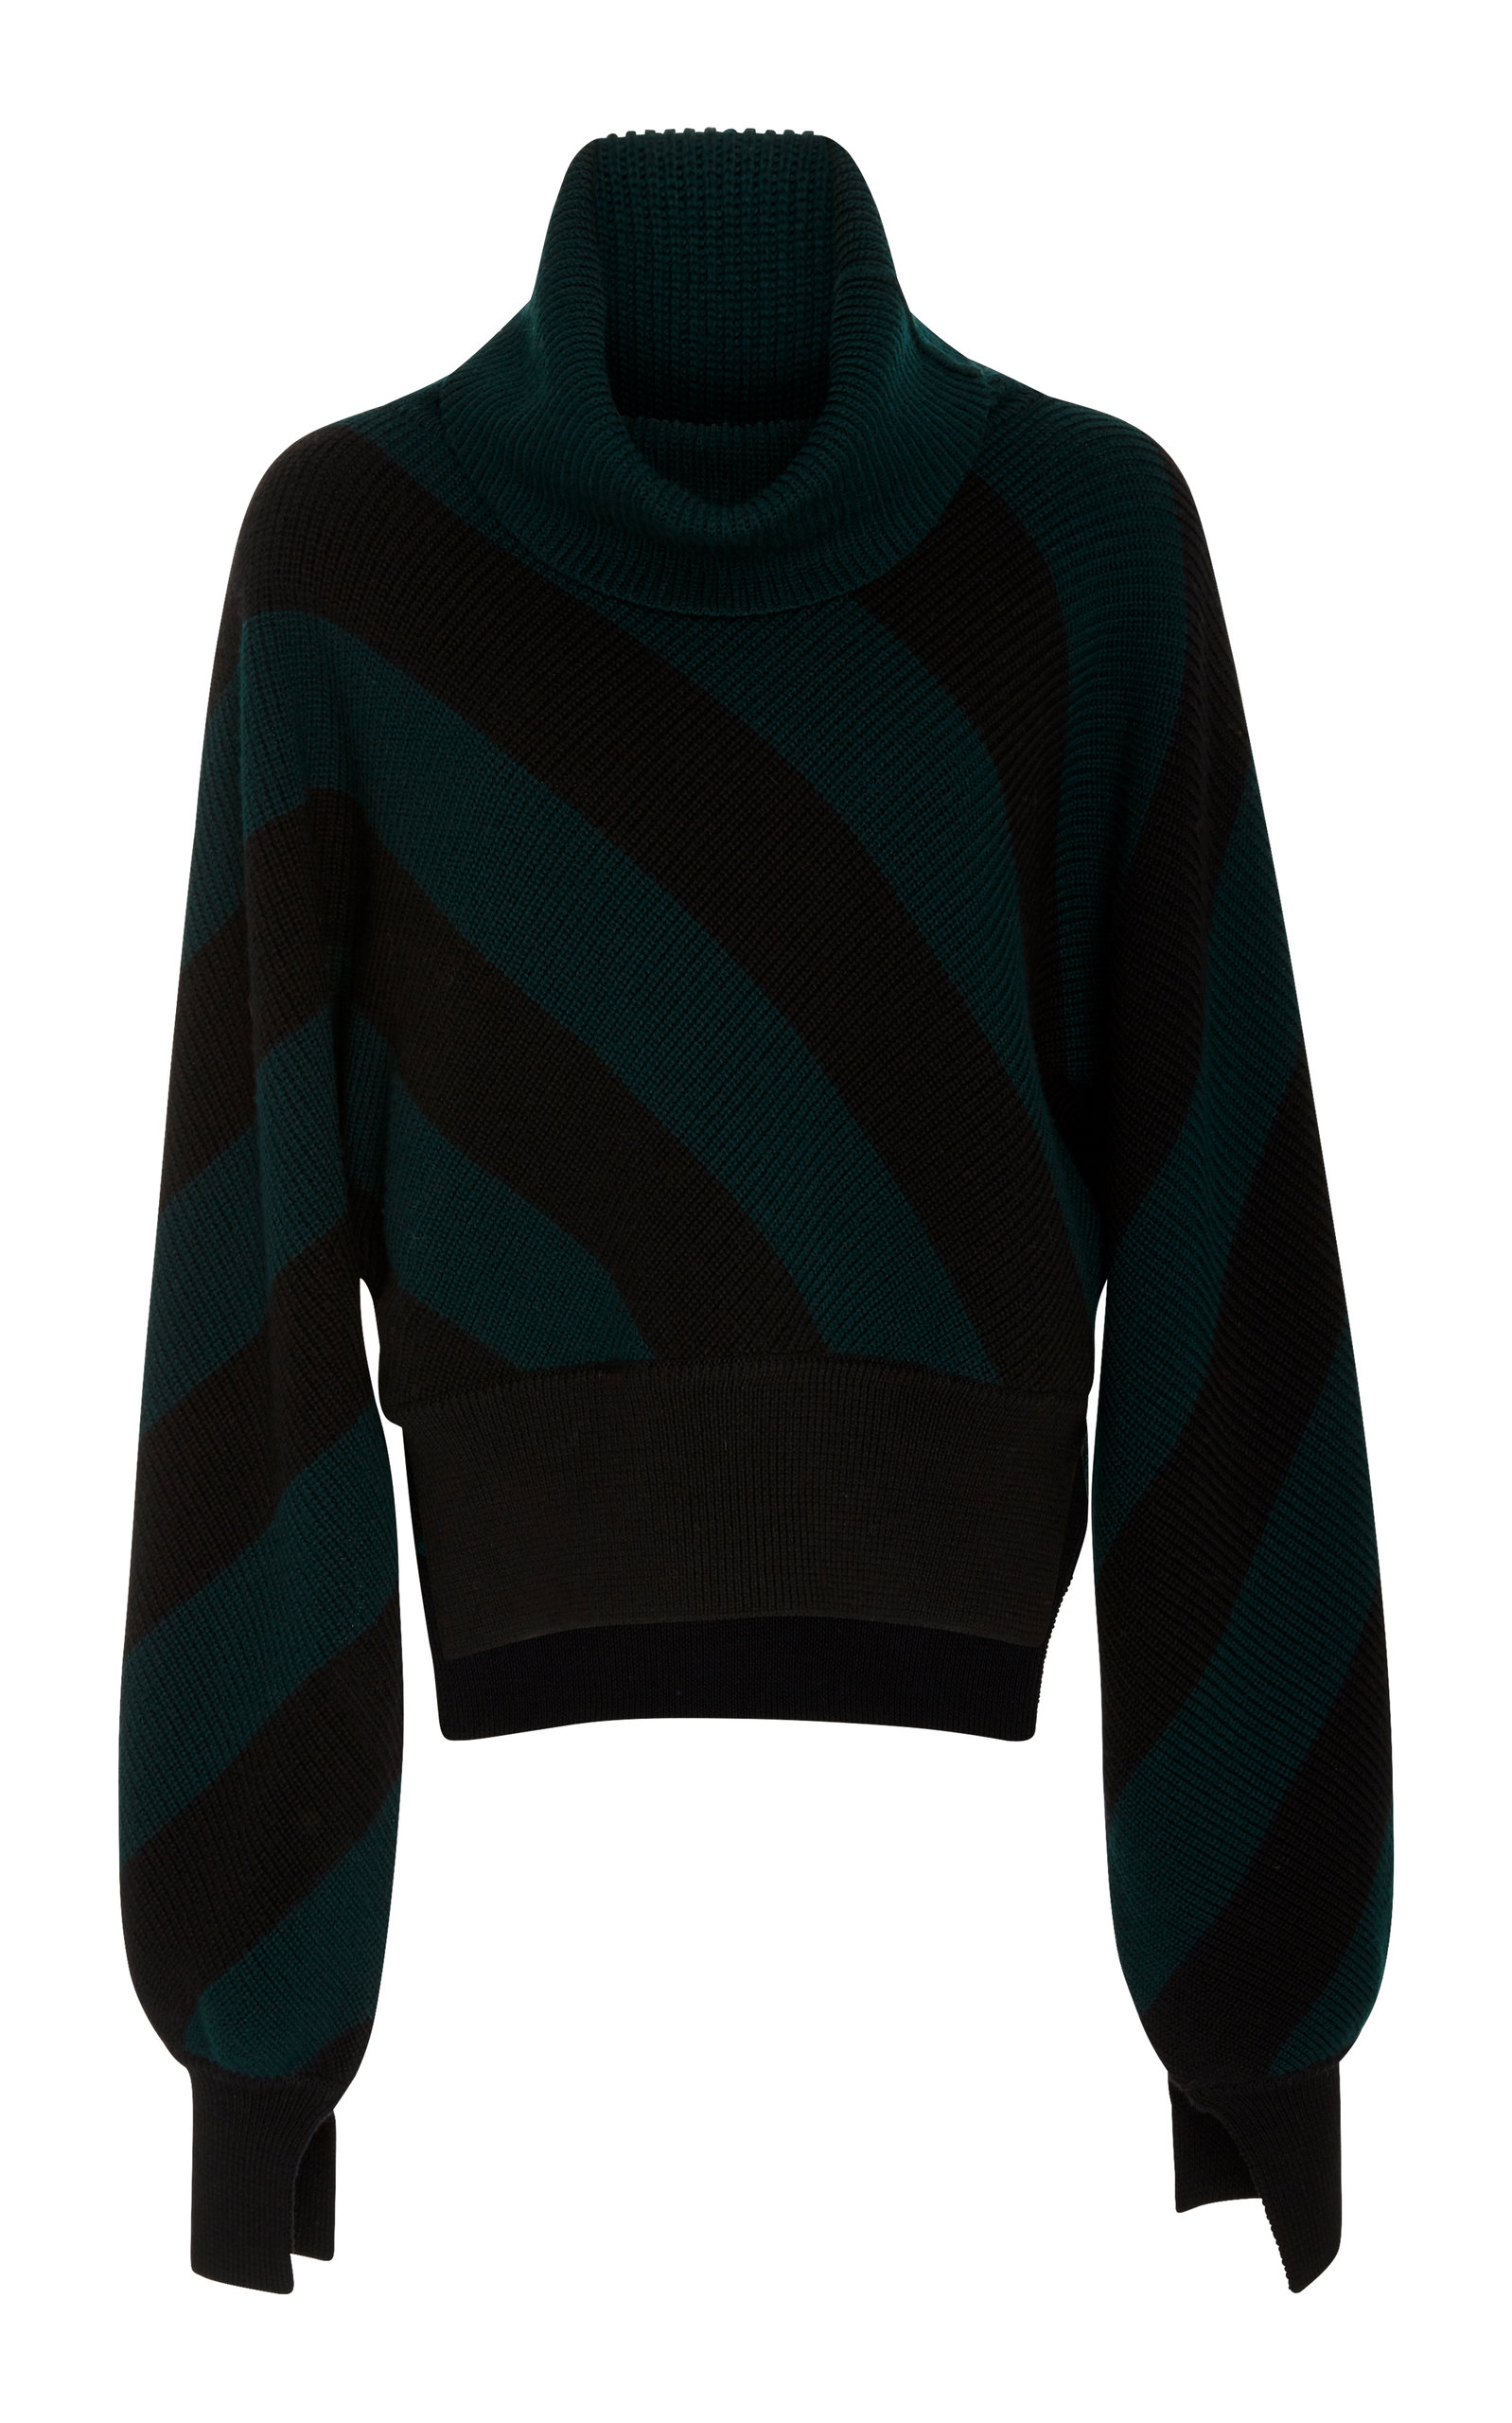 MONSE Diagonal Stripe Turtleneck Sweater in Green | ModeSens